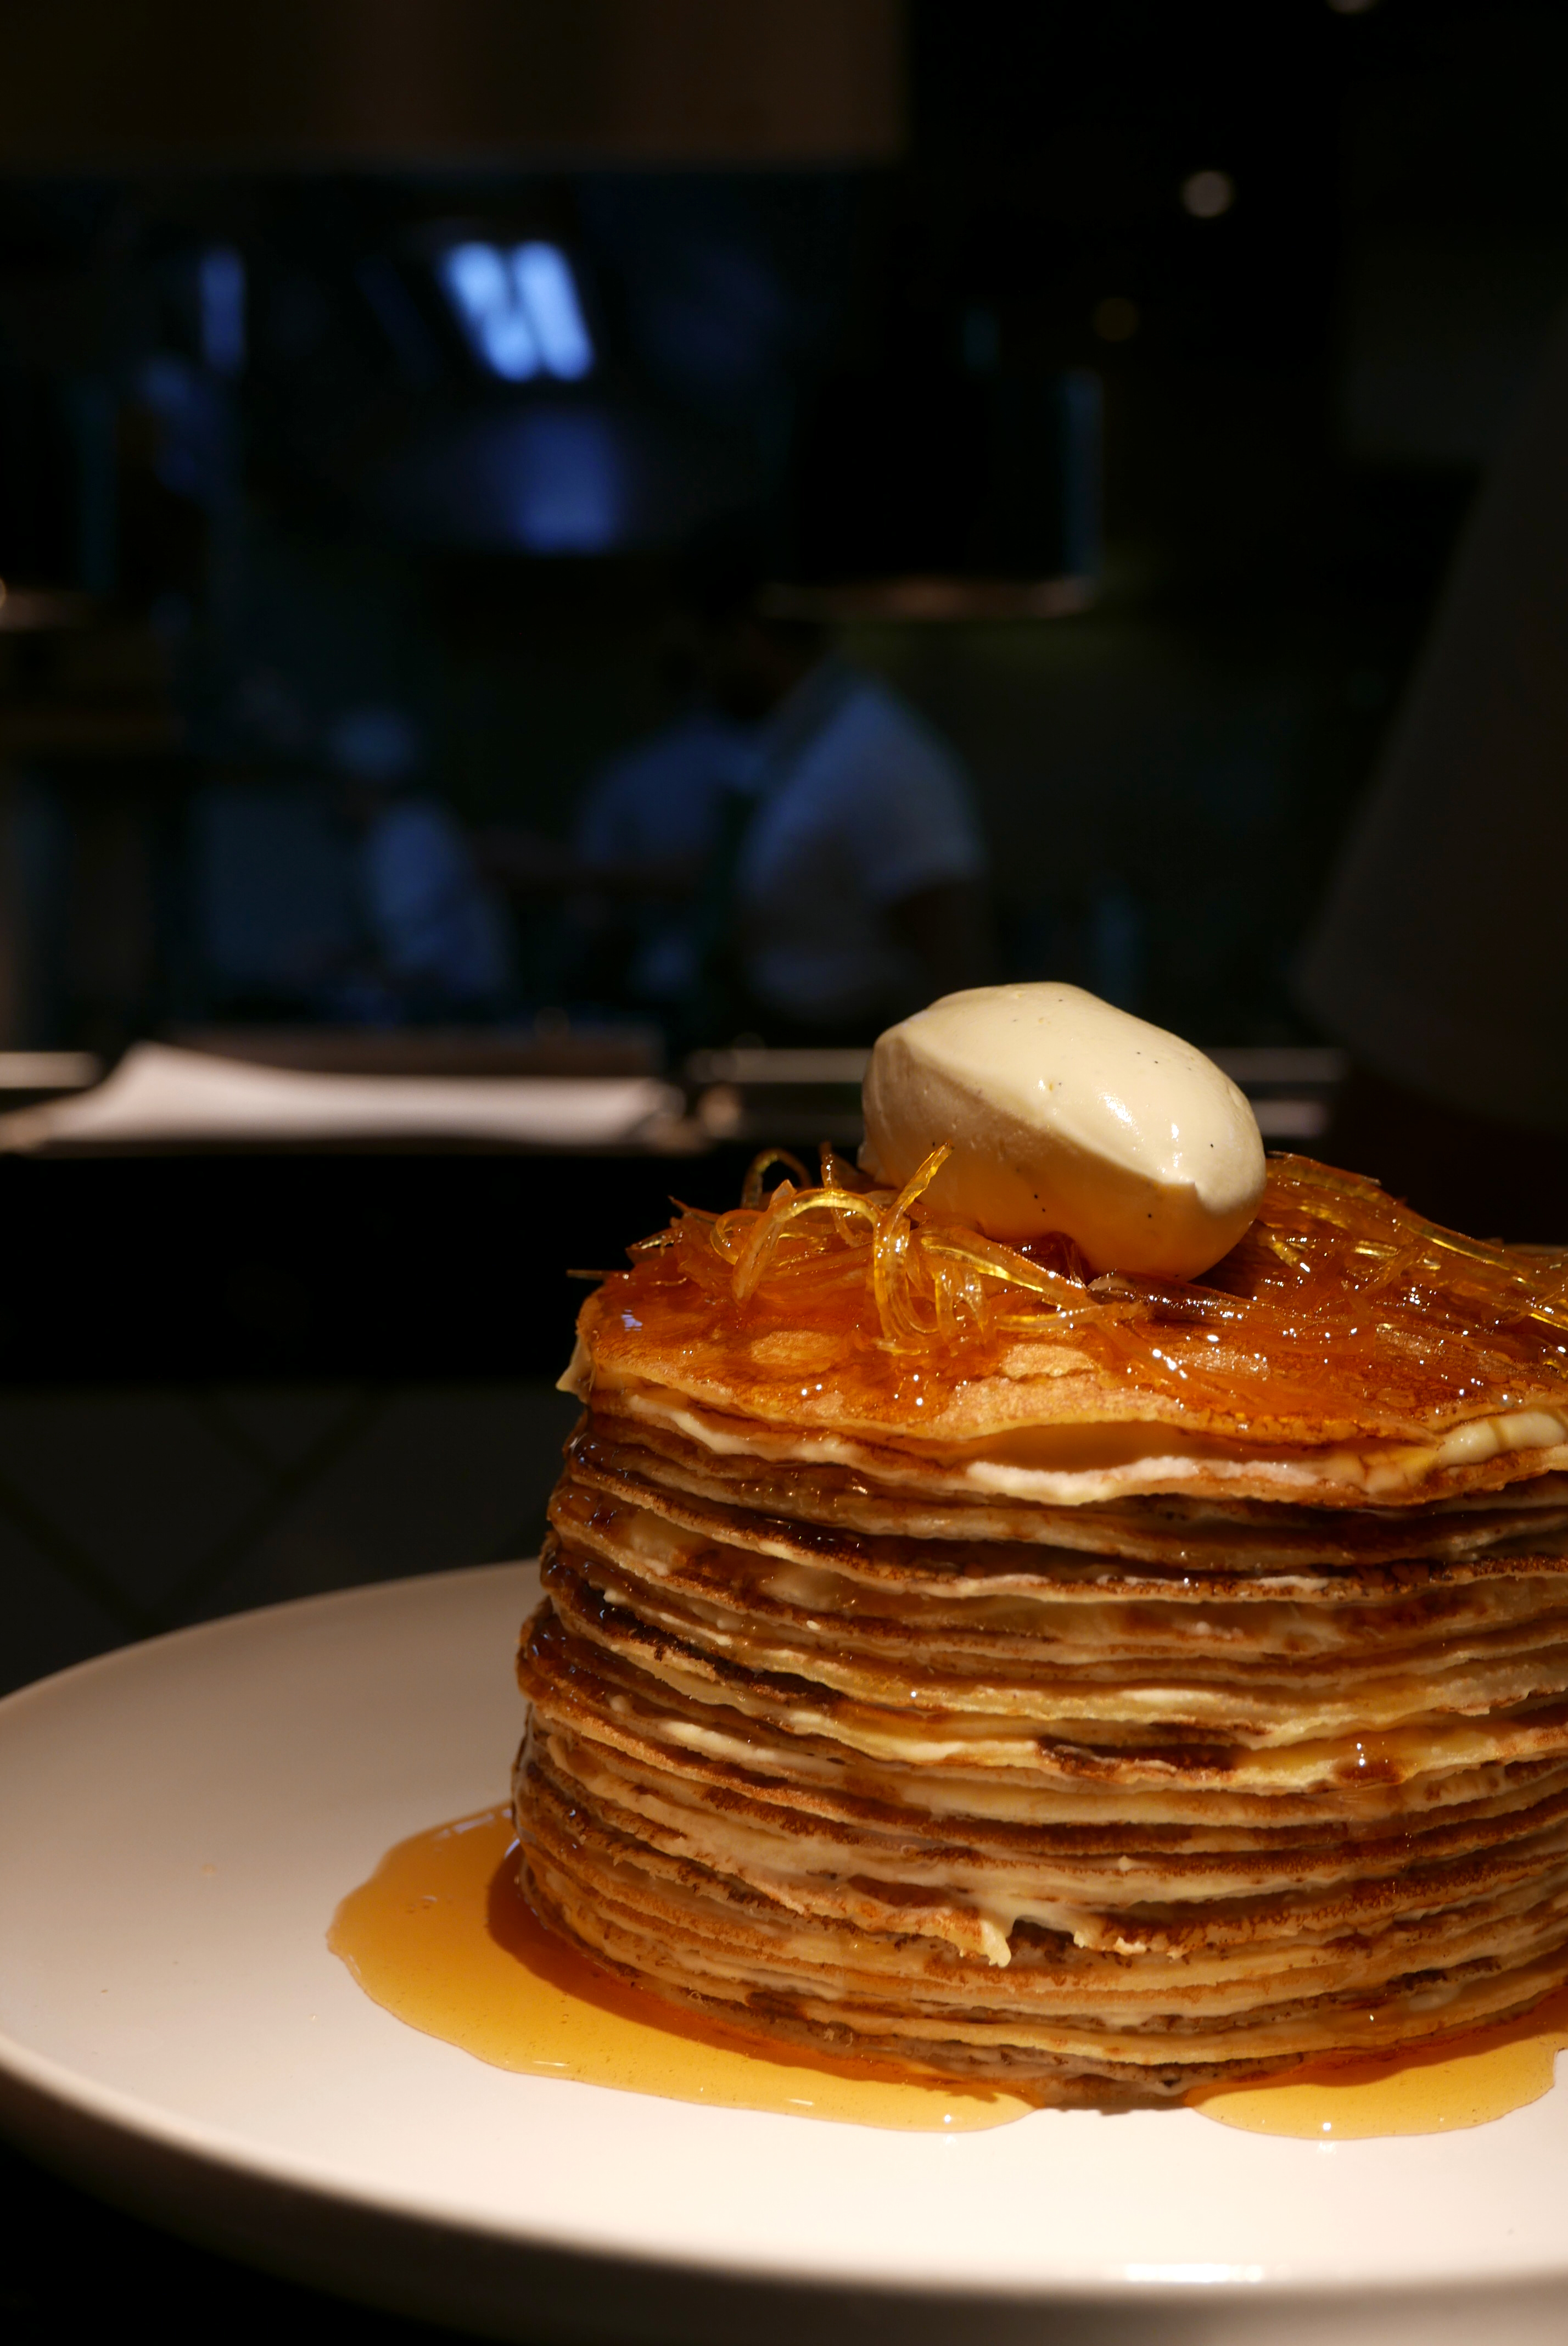 Pancake Day in London 2019, Pancake Day in London, best pancakes in london, best pancakes in london for Pancake Day in London, best pancakes for Pancake Day, London's best pancakes